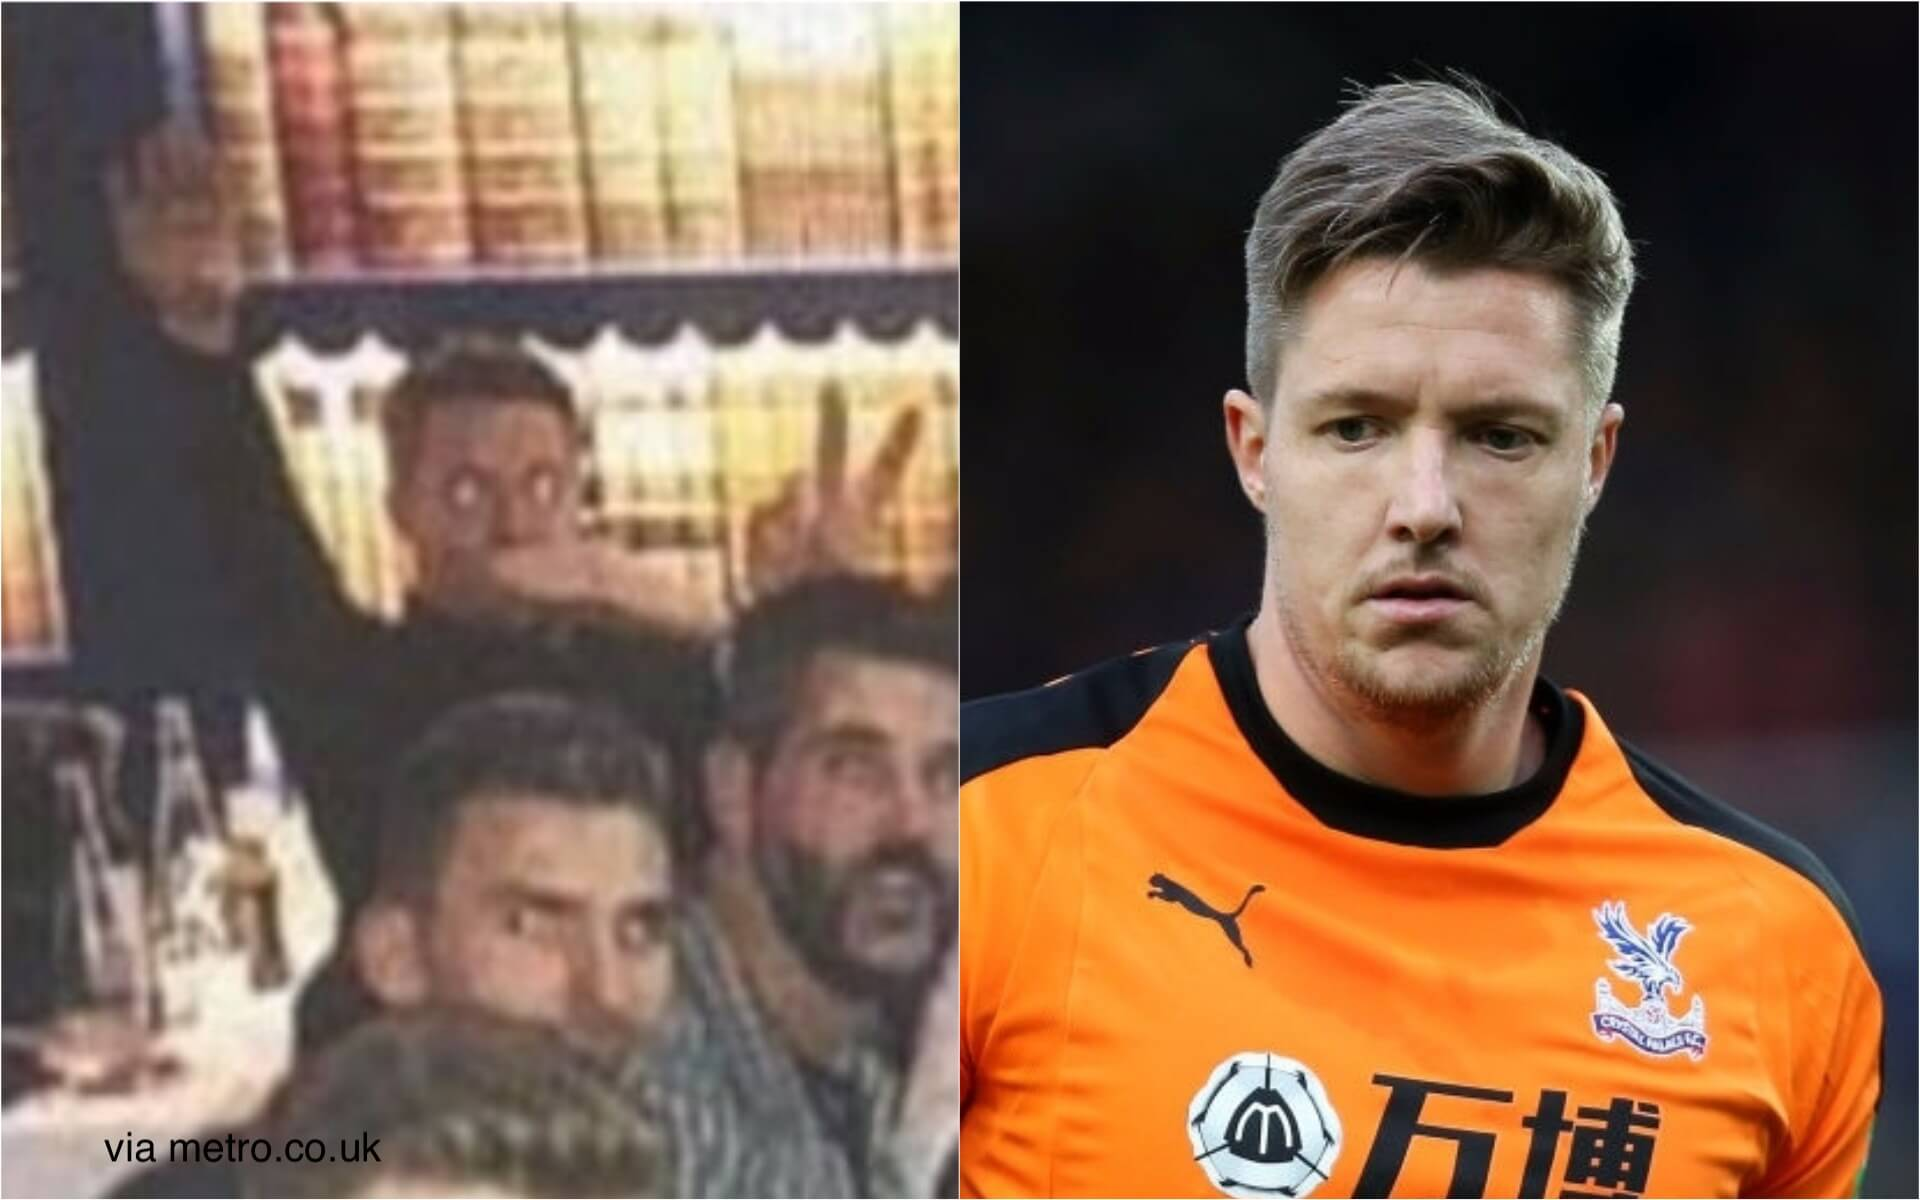 British goalkeeper desperately wants to learn about Hitler. Why would he?